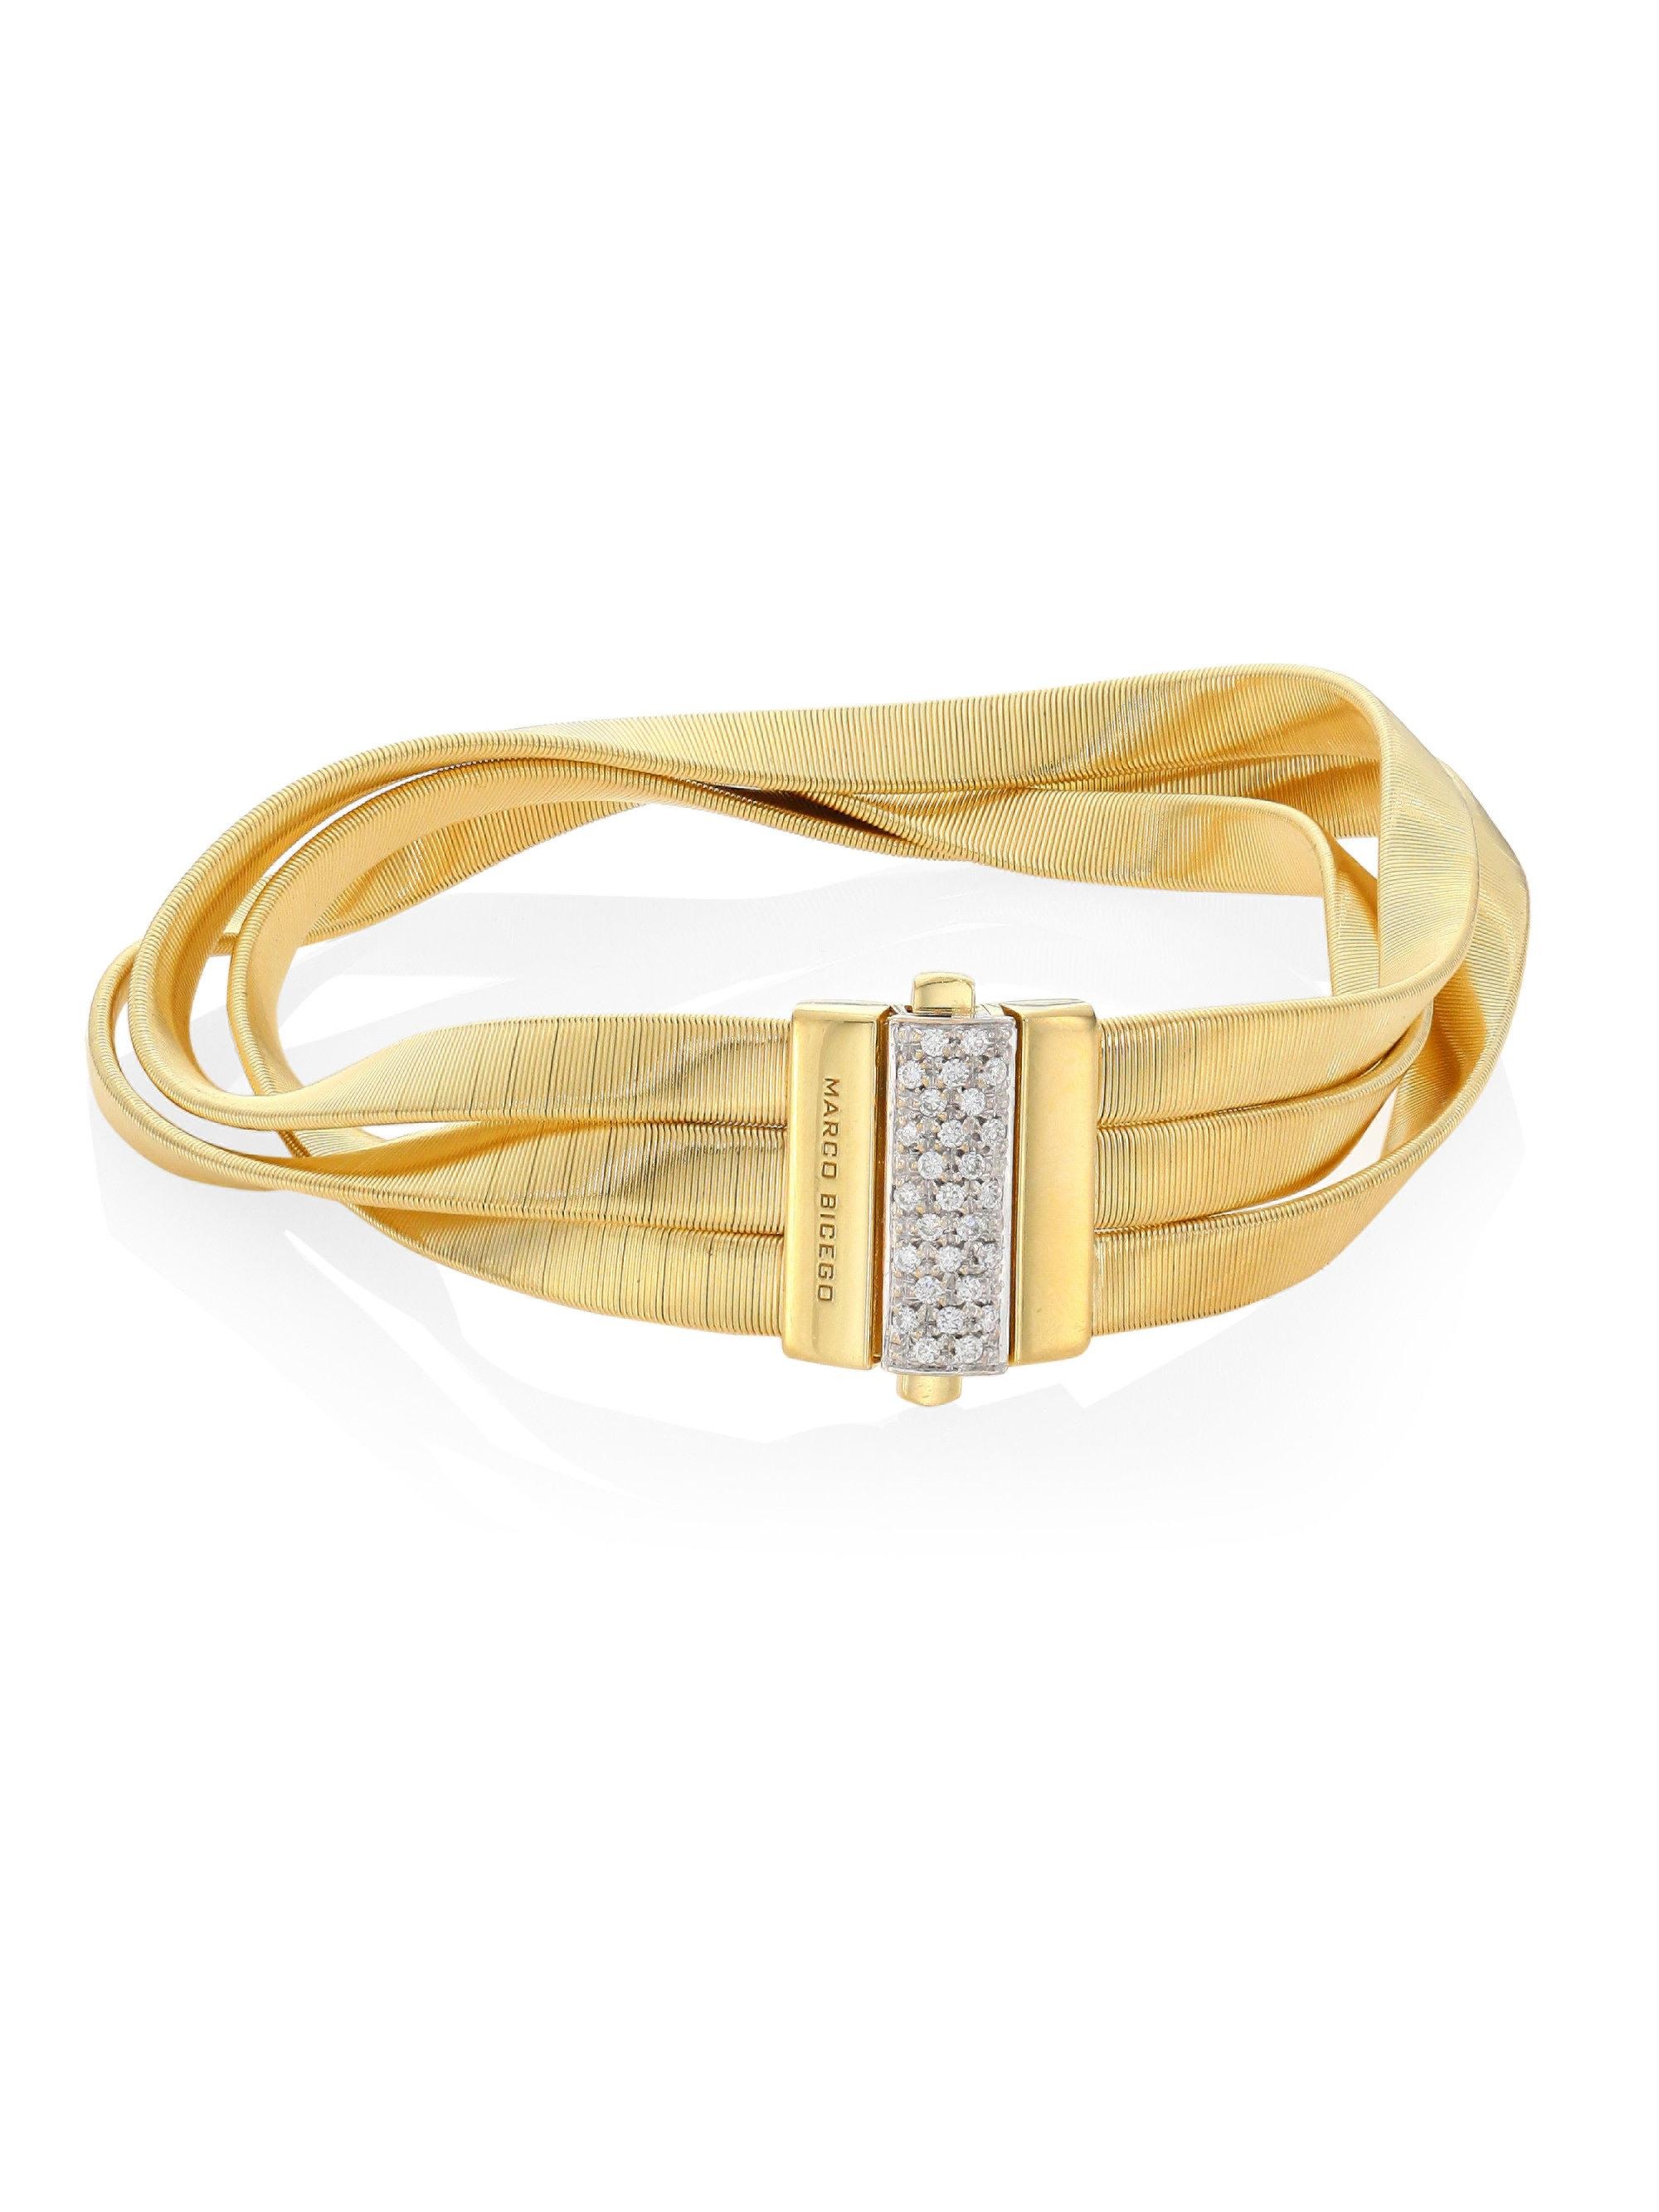 Marco Bicego Marrakech Supreme 18k Twisted Bracelet, Yellow Gold